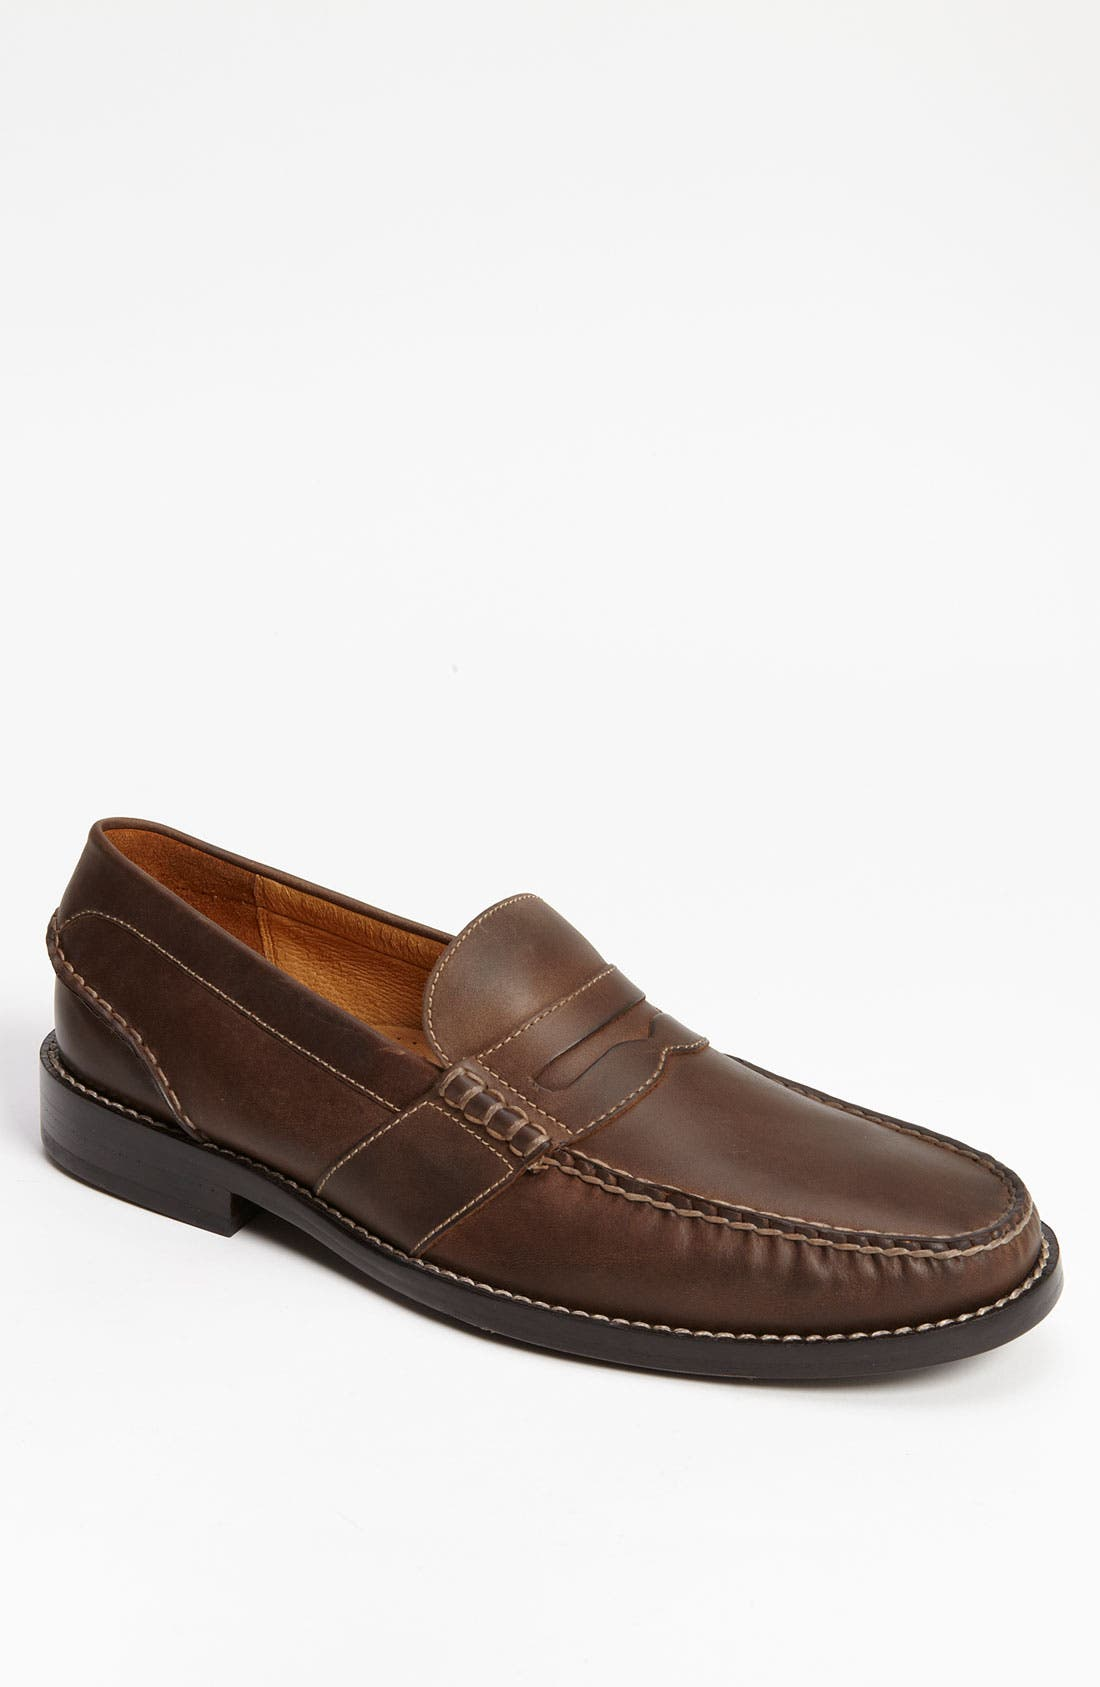 Alternate Image 1 Selected - Sperry Top-Sider® 'Gold Cup' Penny Loafer